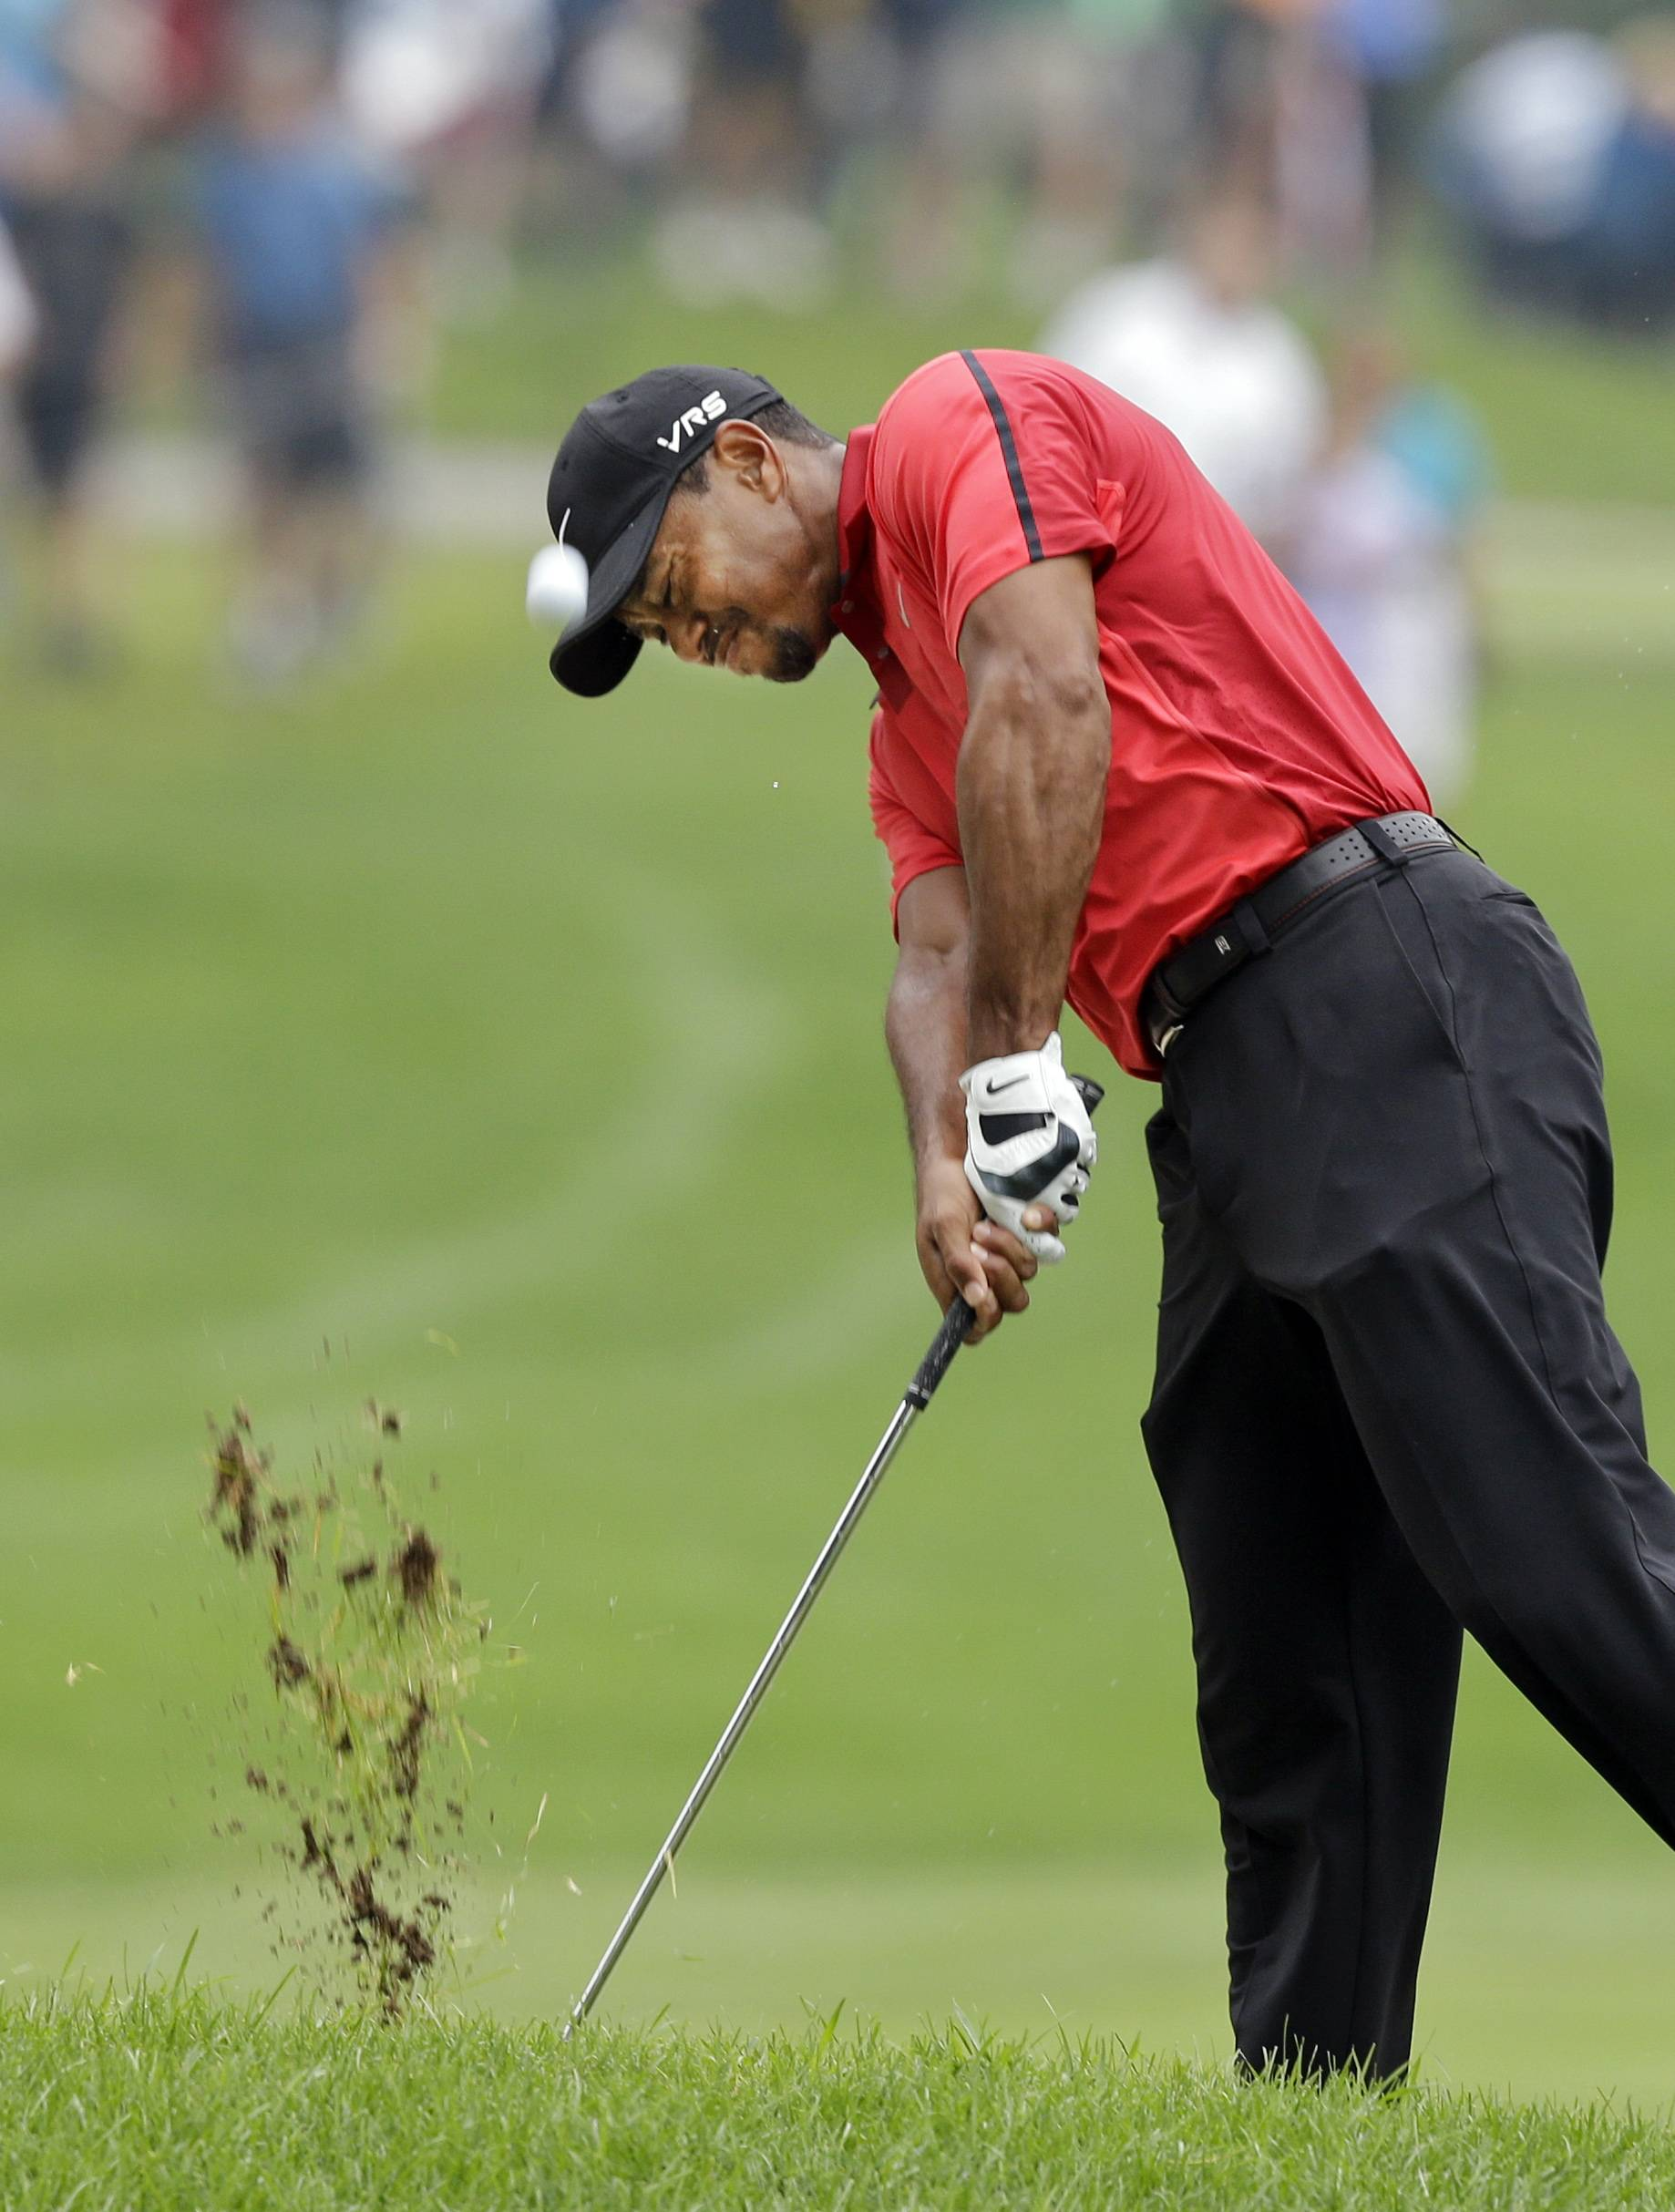 Tiger Woods hits from the lip of a fairway trap on the second hole during the final round of the Bridgestone Invitational golf tournament Sunday at Firestone Country Club in Akron, Ohio. Woods withdrew from the tournament after eight holes due to back pain.